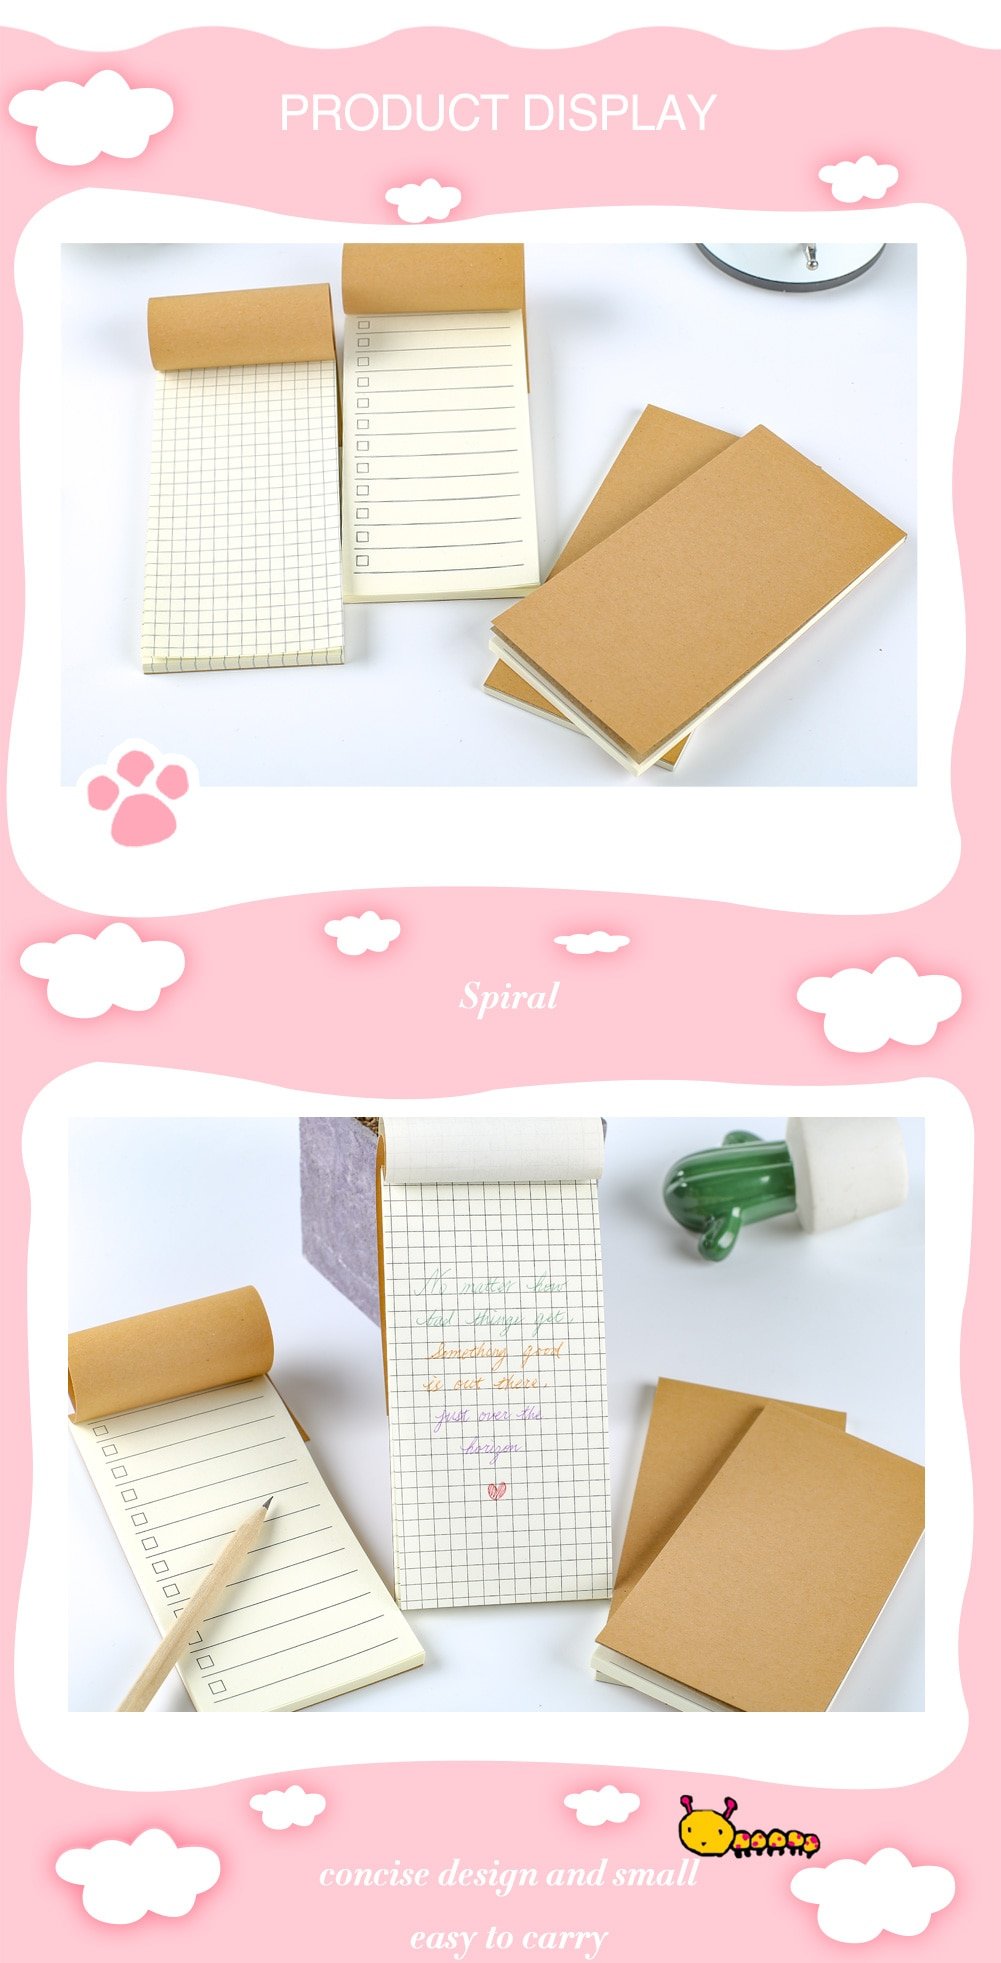 Notebook Planner Office Accessory Blank Grid Diary Binder Notepad Agenda Stationery Journal to Do List Shopping Check Stationary